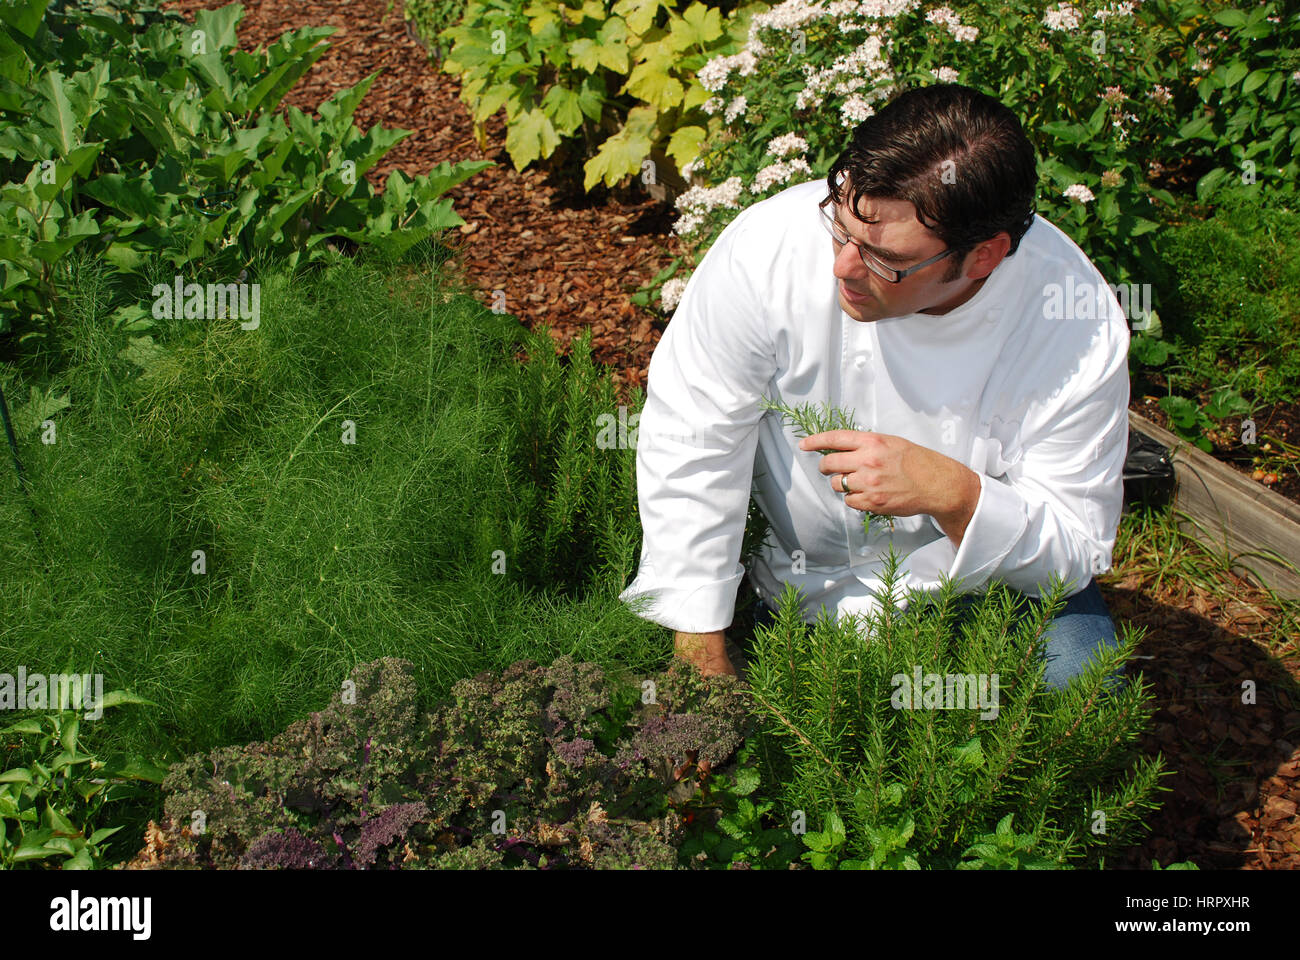 Chef in rosemary garden selecting product - Stock Image